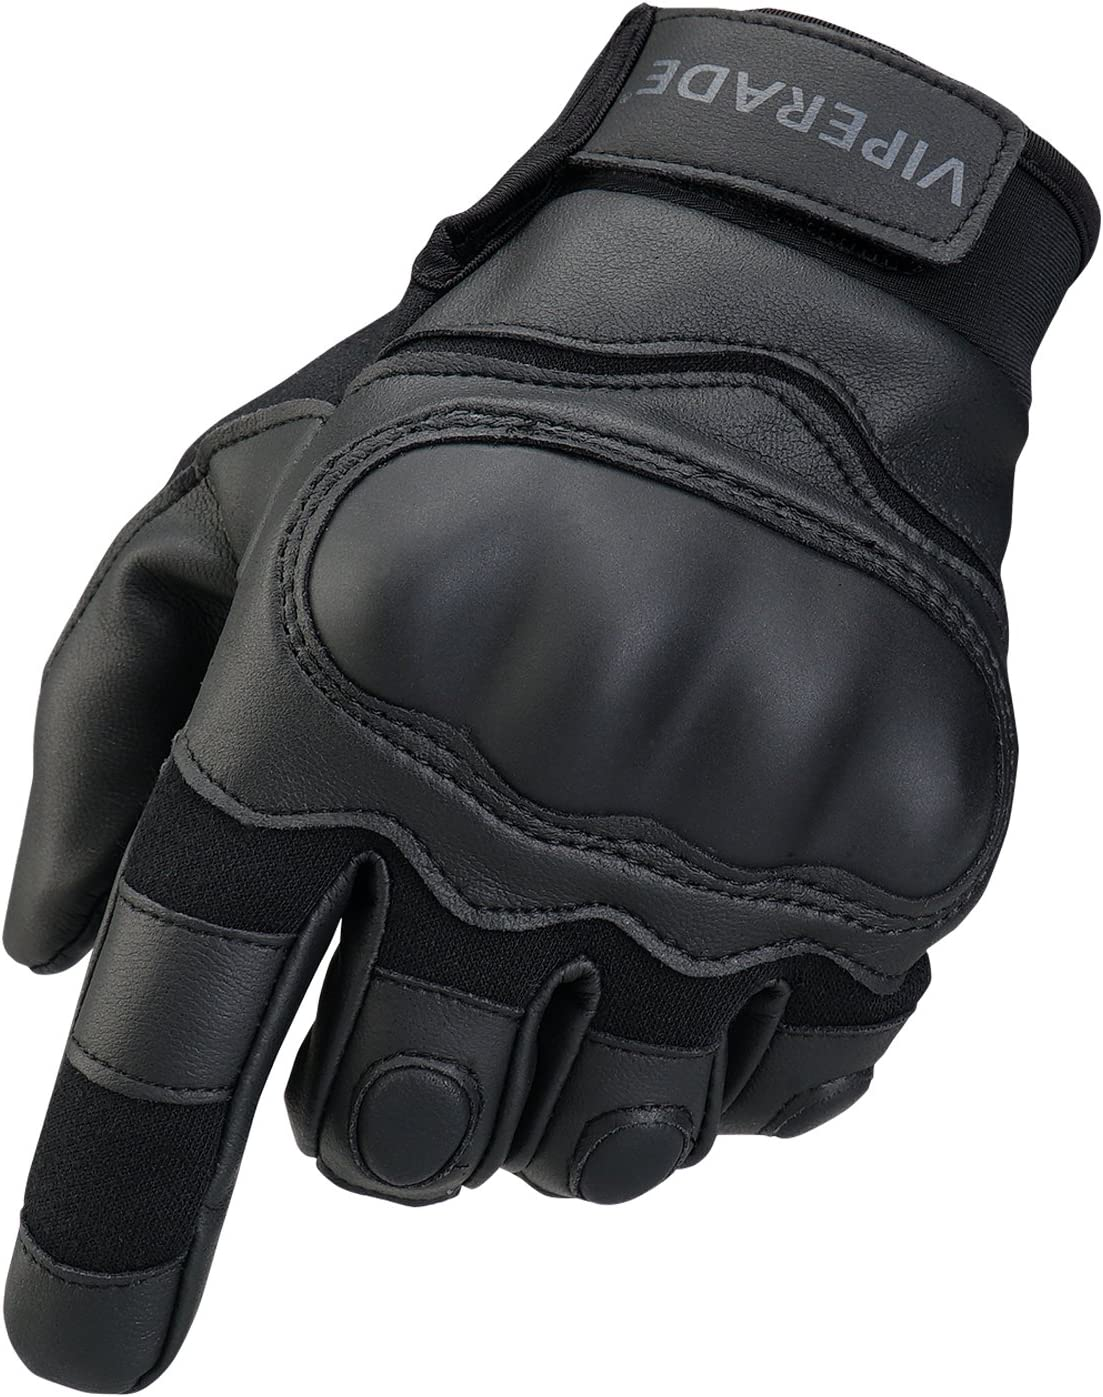 Viperade Mens Tactical Gloves Military Rubber Hard Knuckle Outdoor Glove | Heavy Duty Glove